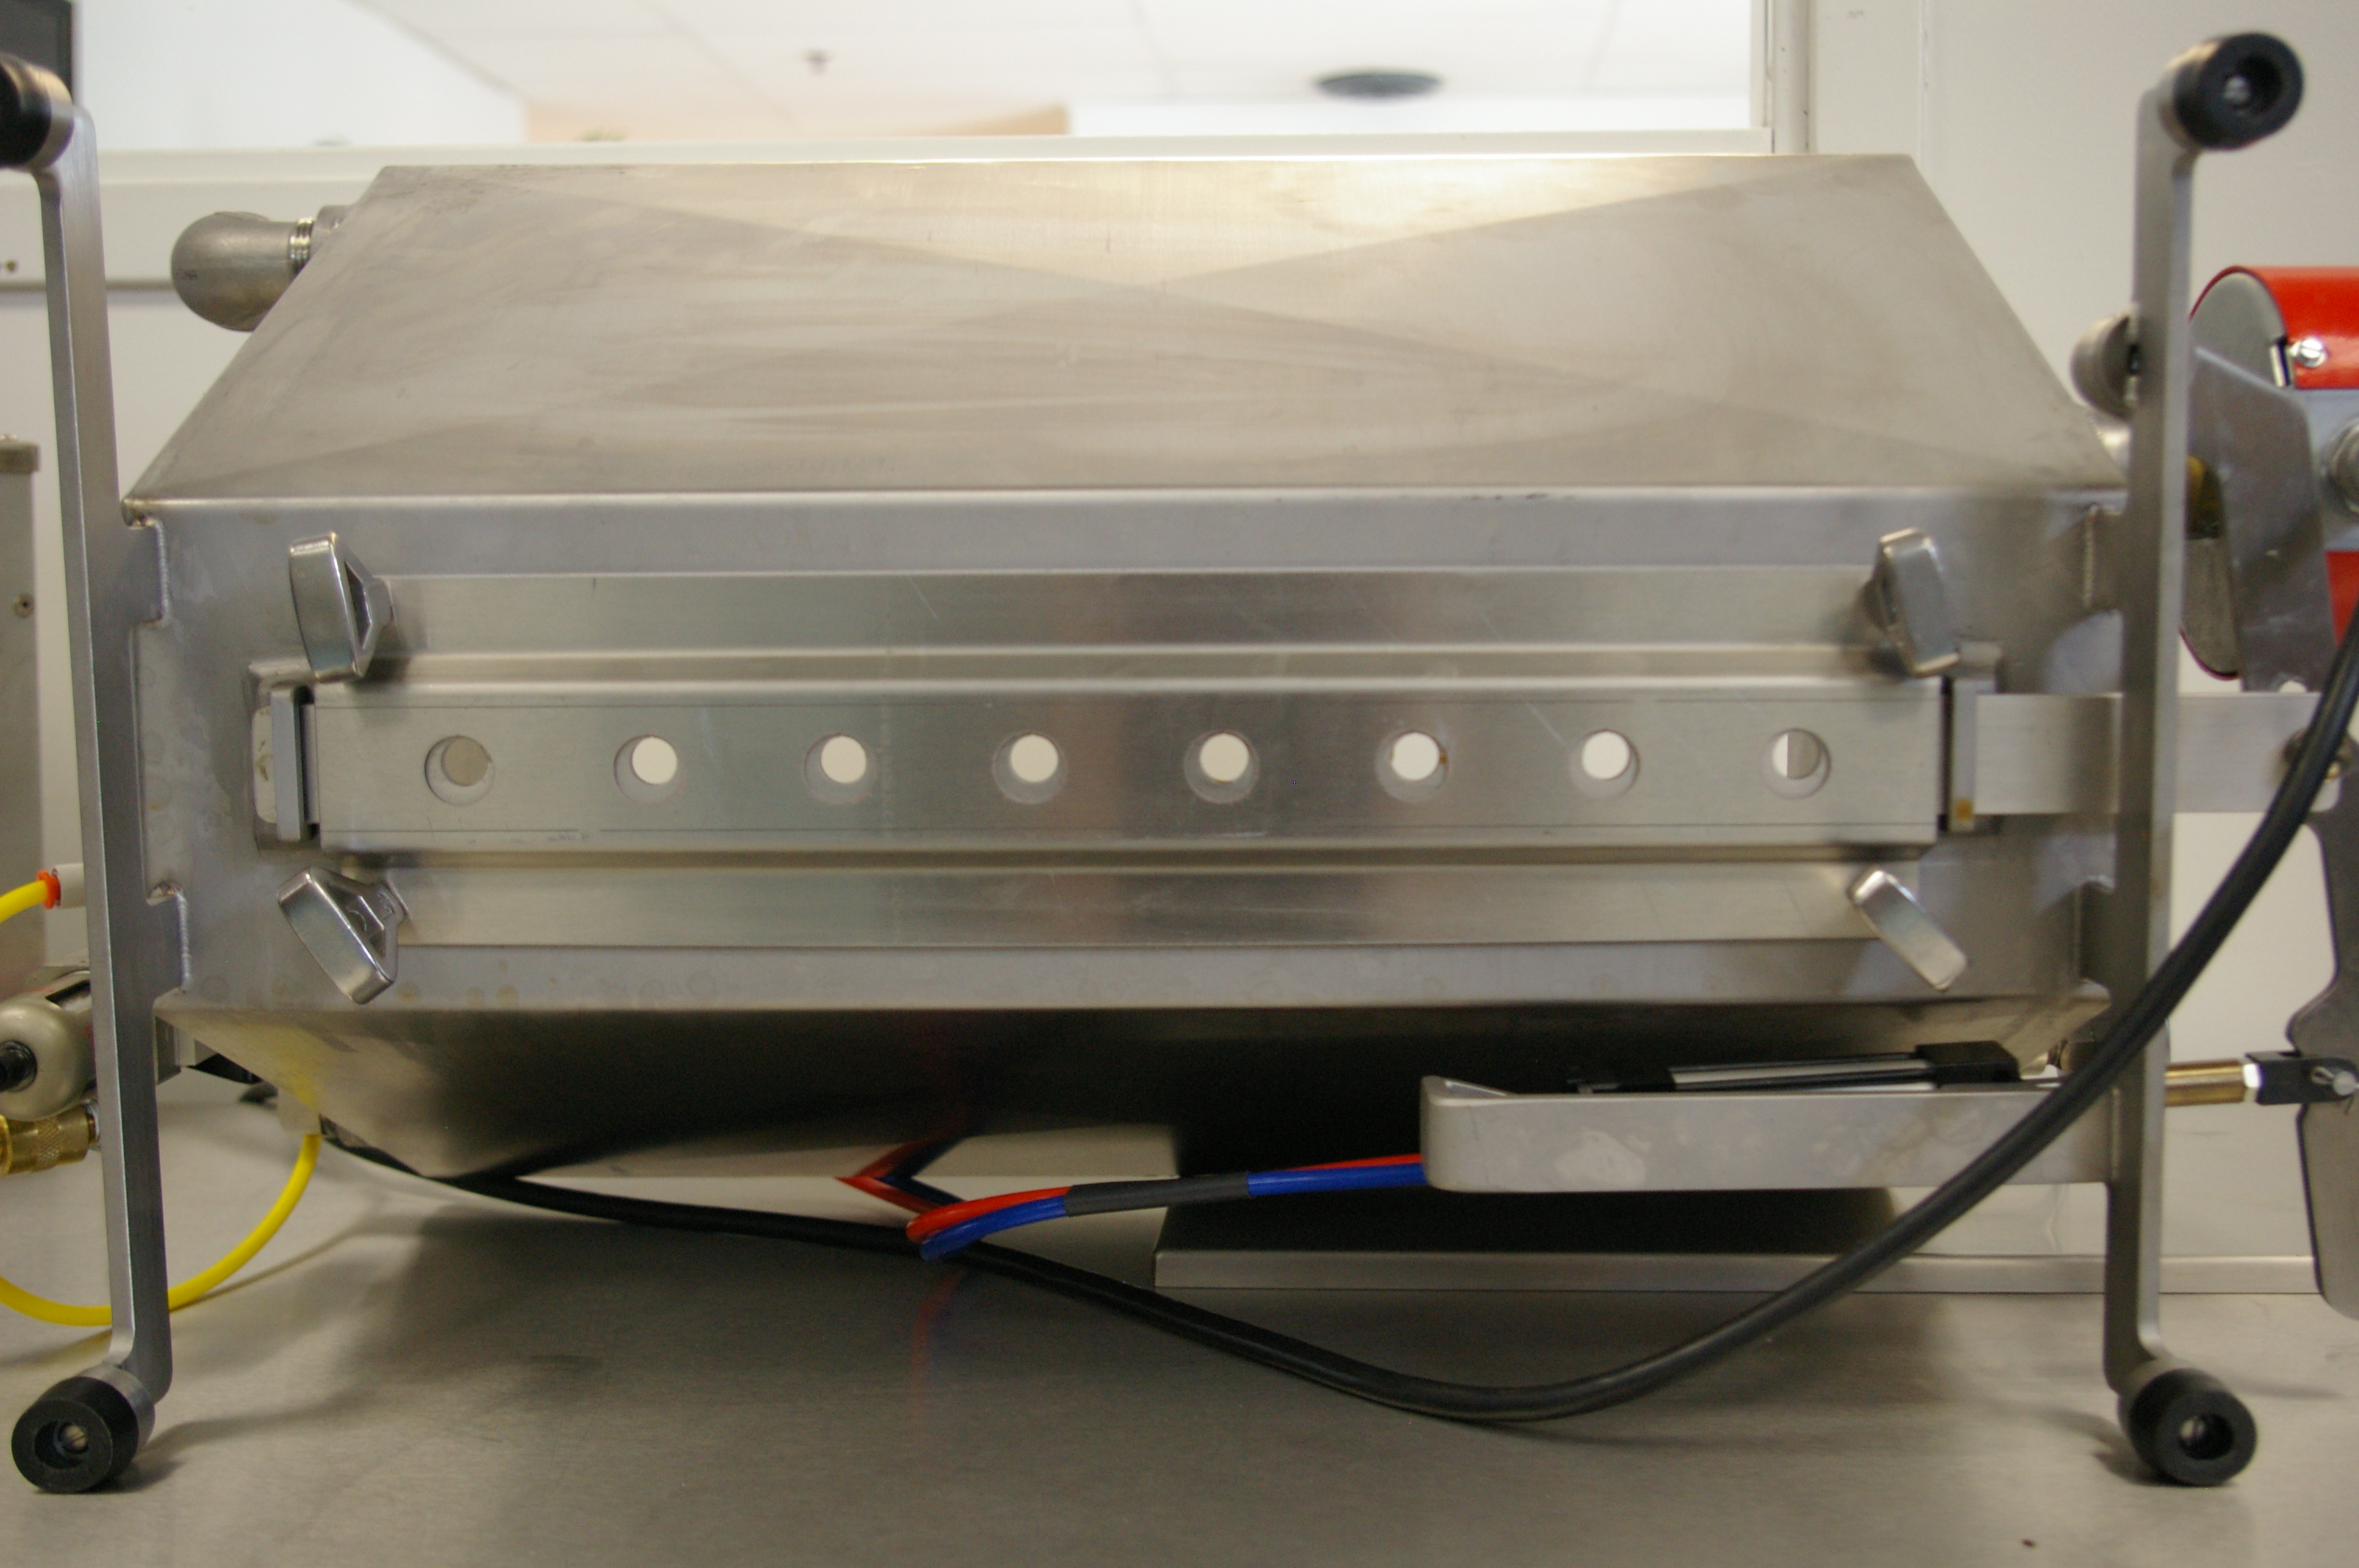 Caramel Depositor Candy Cooking Equipment Tcf Sales